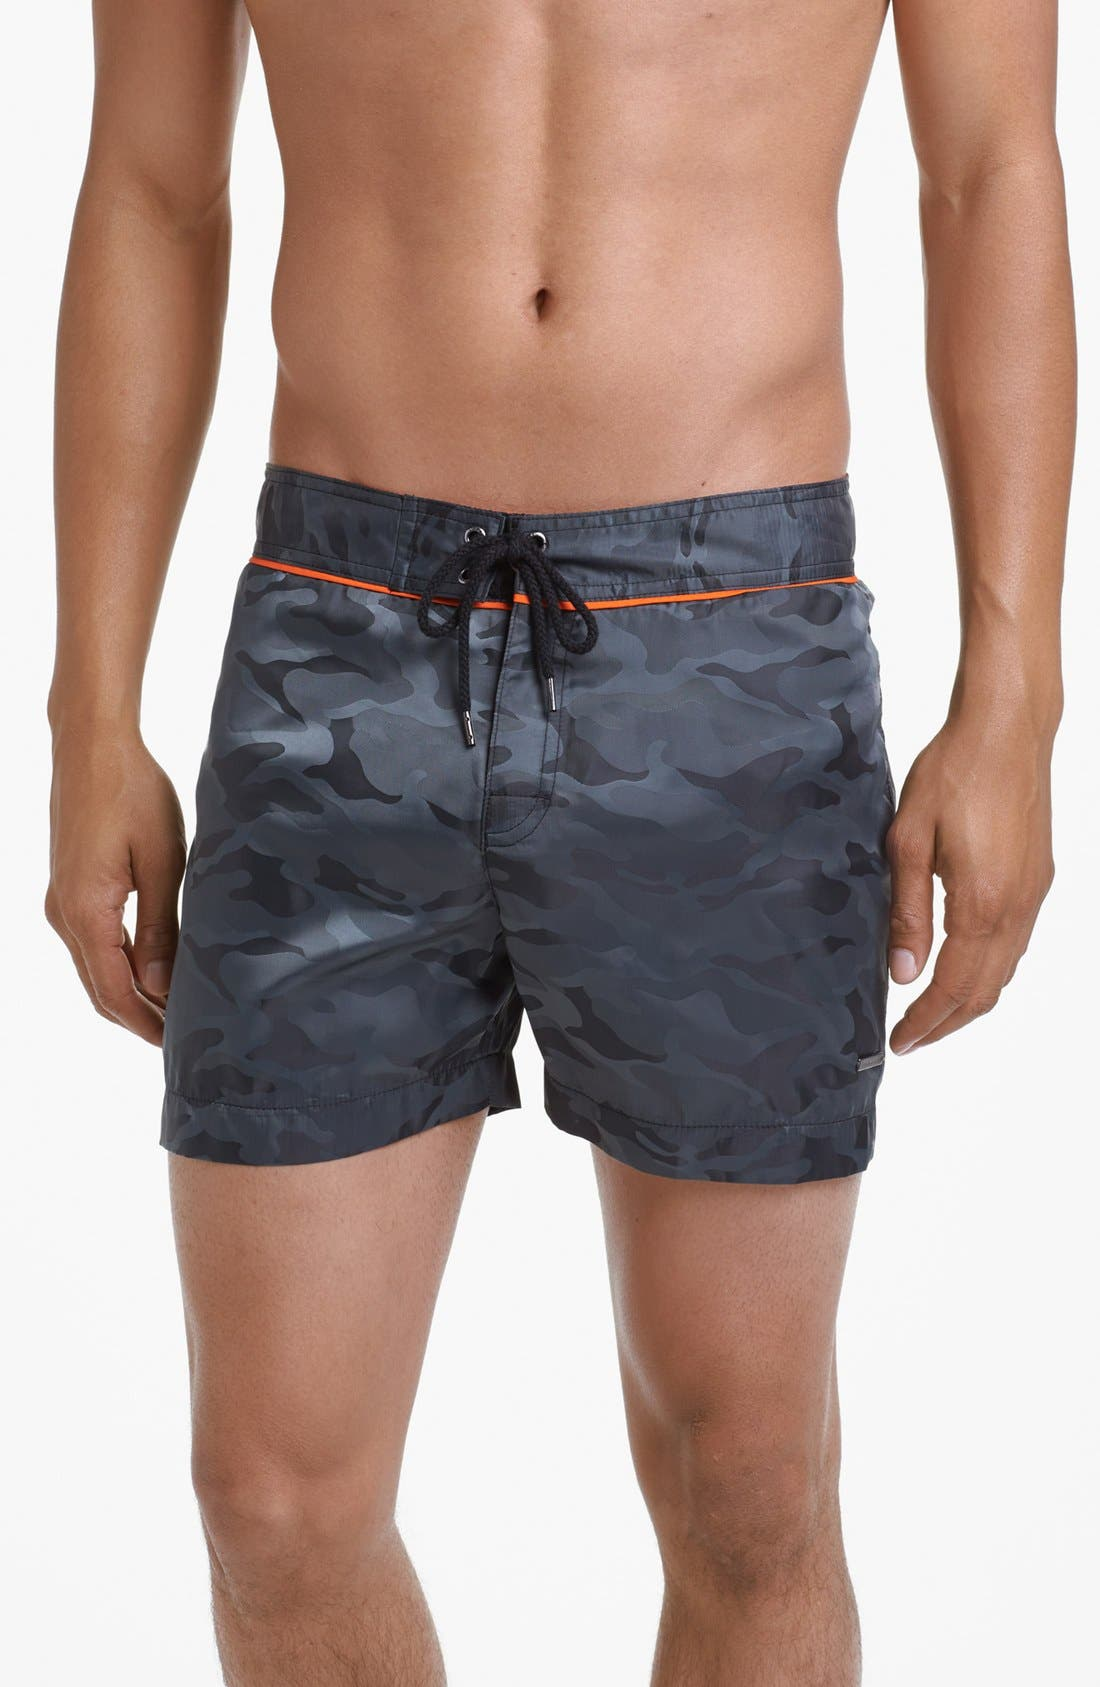 Alternate Image 1 Selected - Parke & Ronen Classic Camo Print Swim Shorts